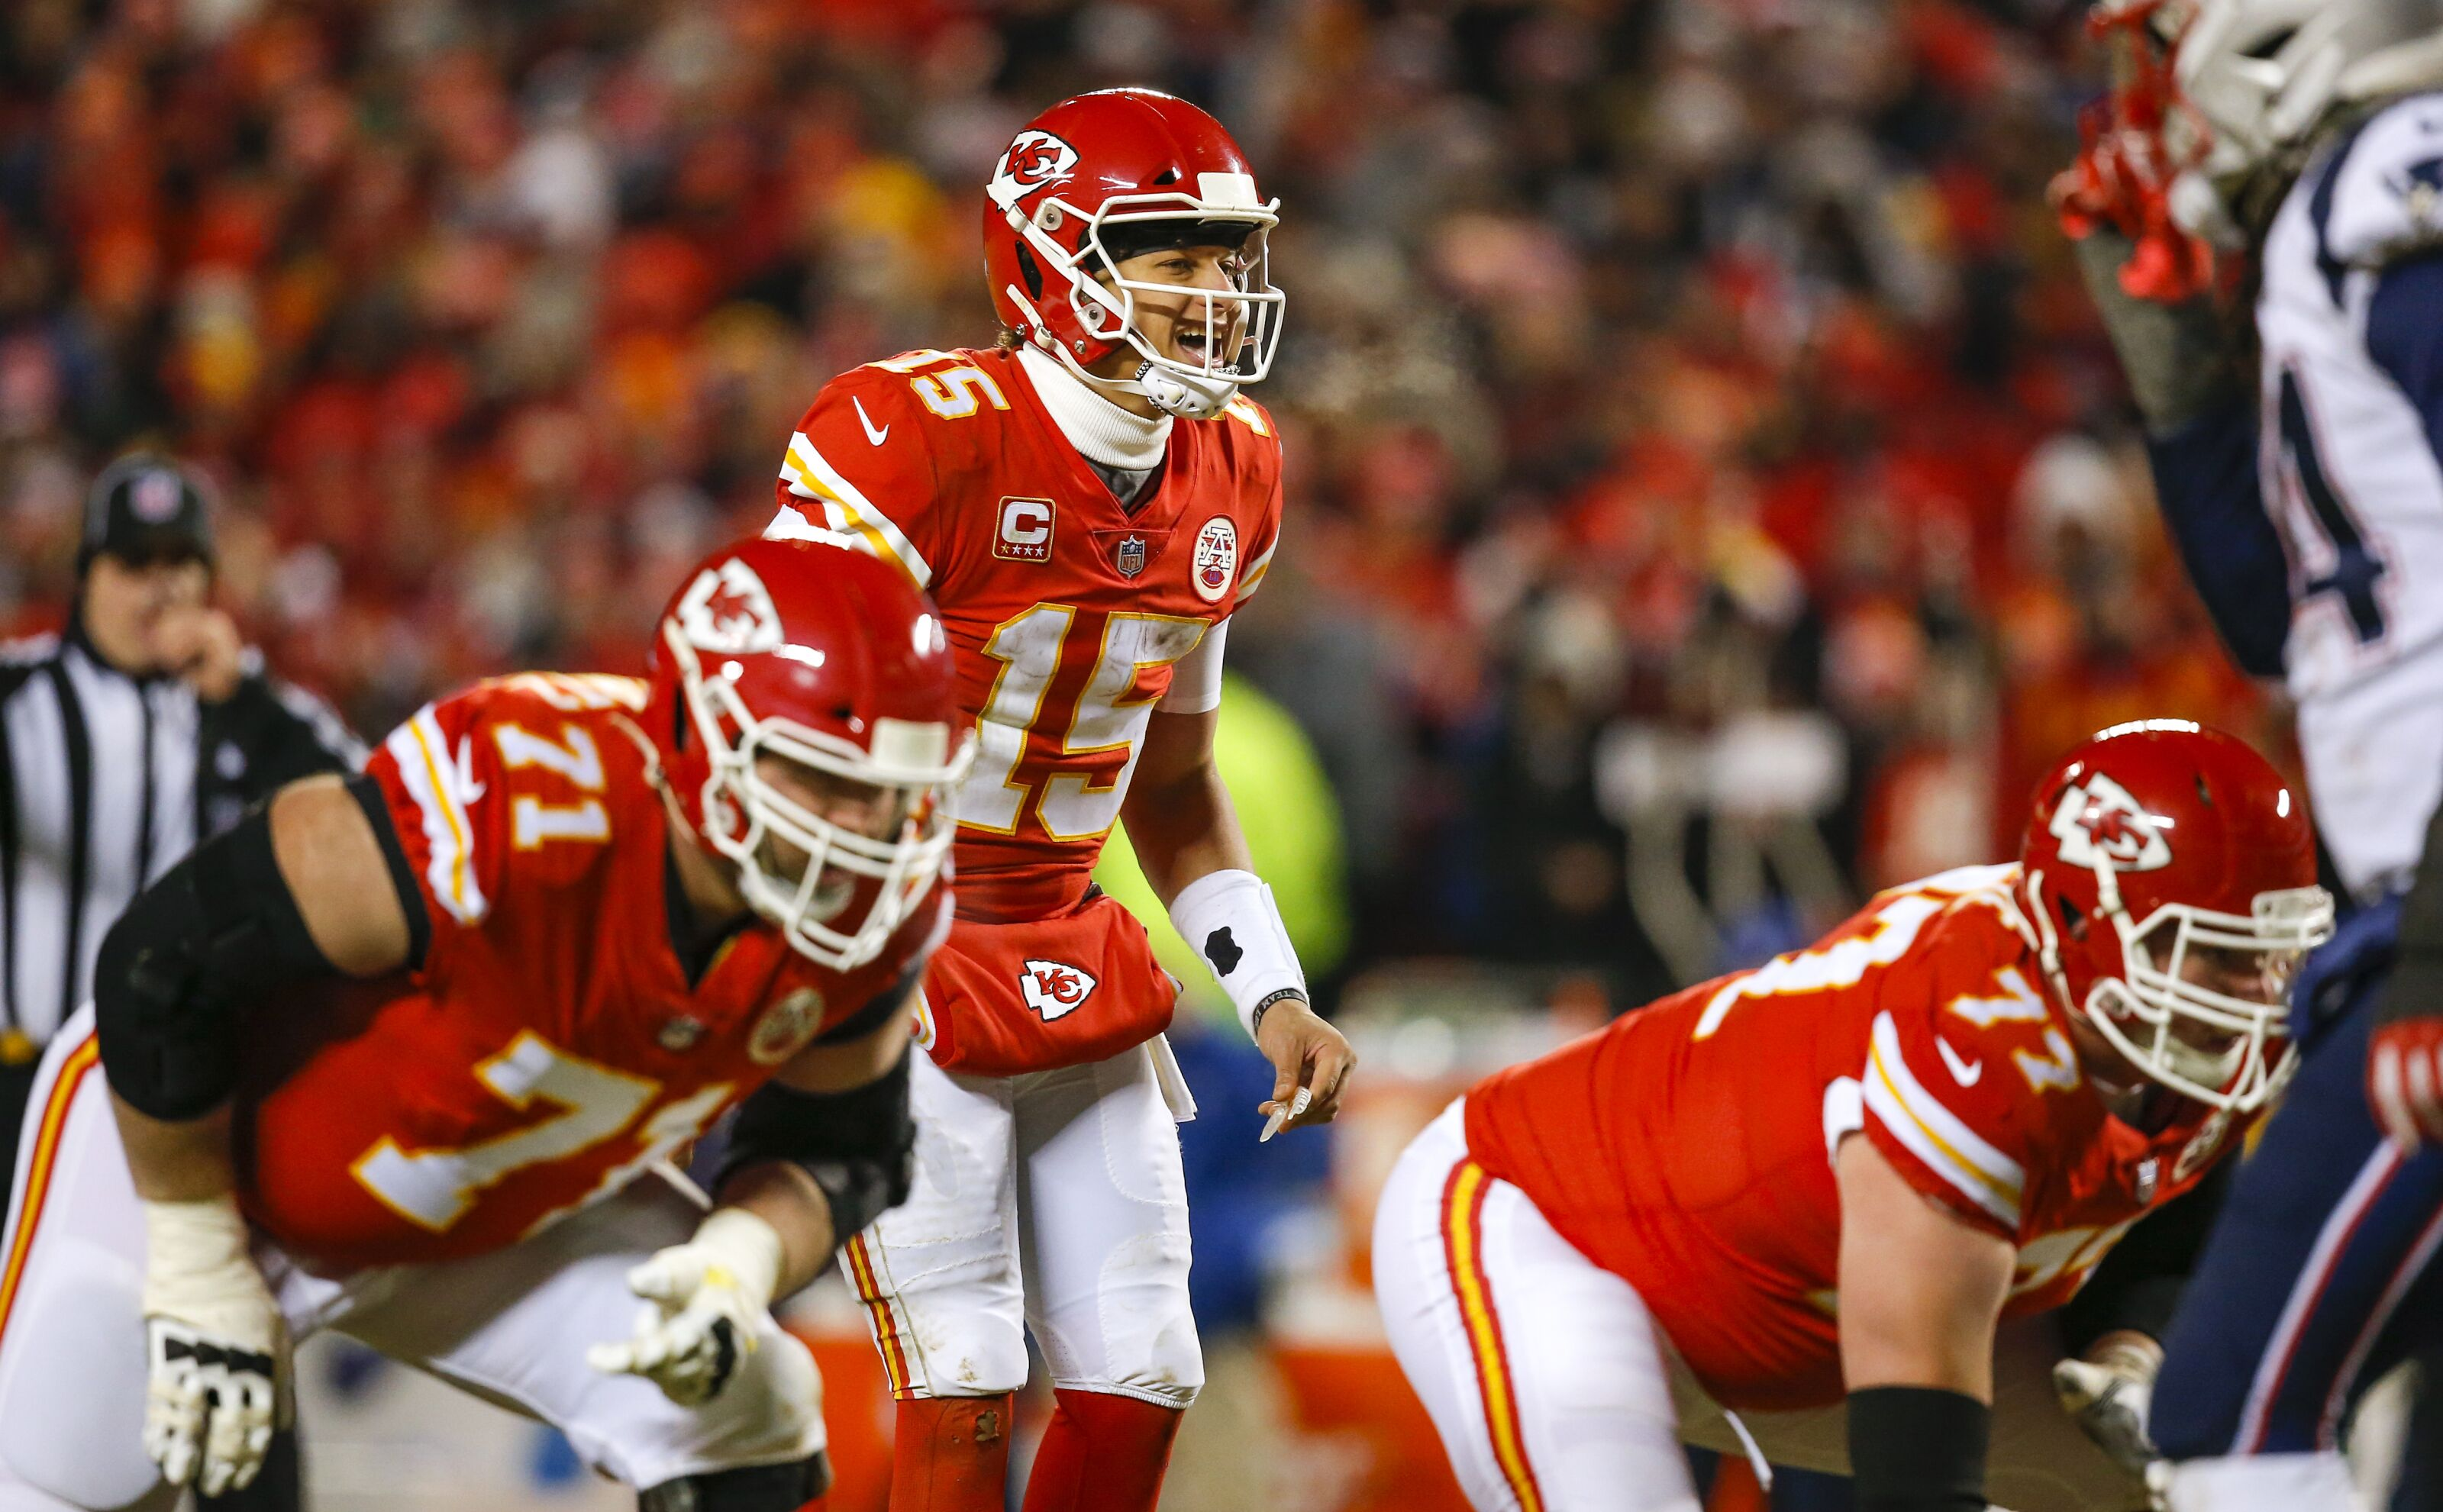 78a94c90 2019 NFL Draft: 5 players Chiefs could take in Round 1 - Football Addicted